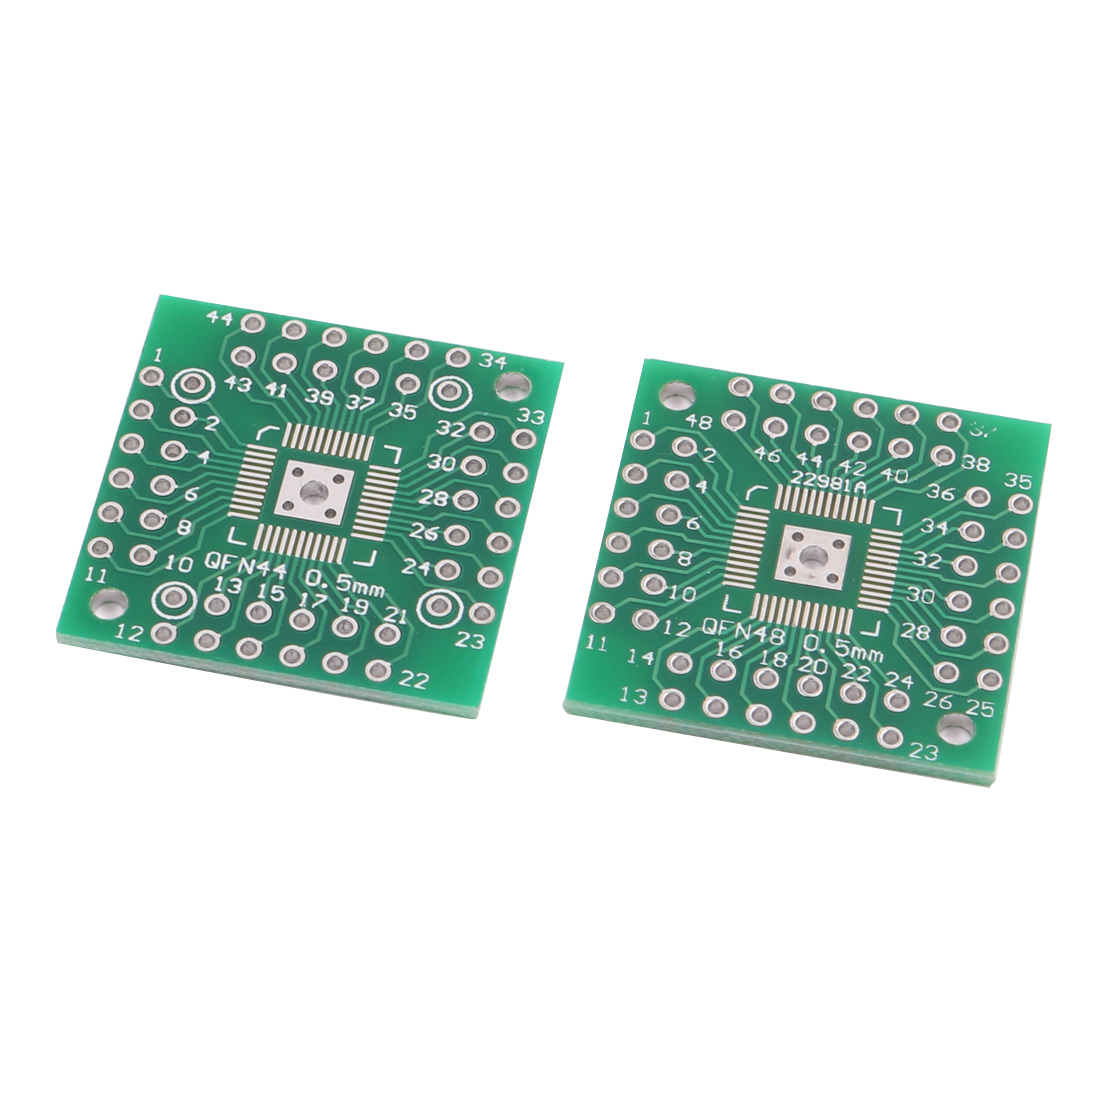 2Pcs Prototyping Double Side PCB Board Stripboard Green 25x25mm QFN48